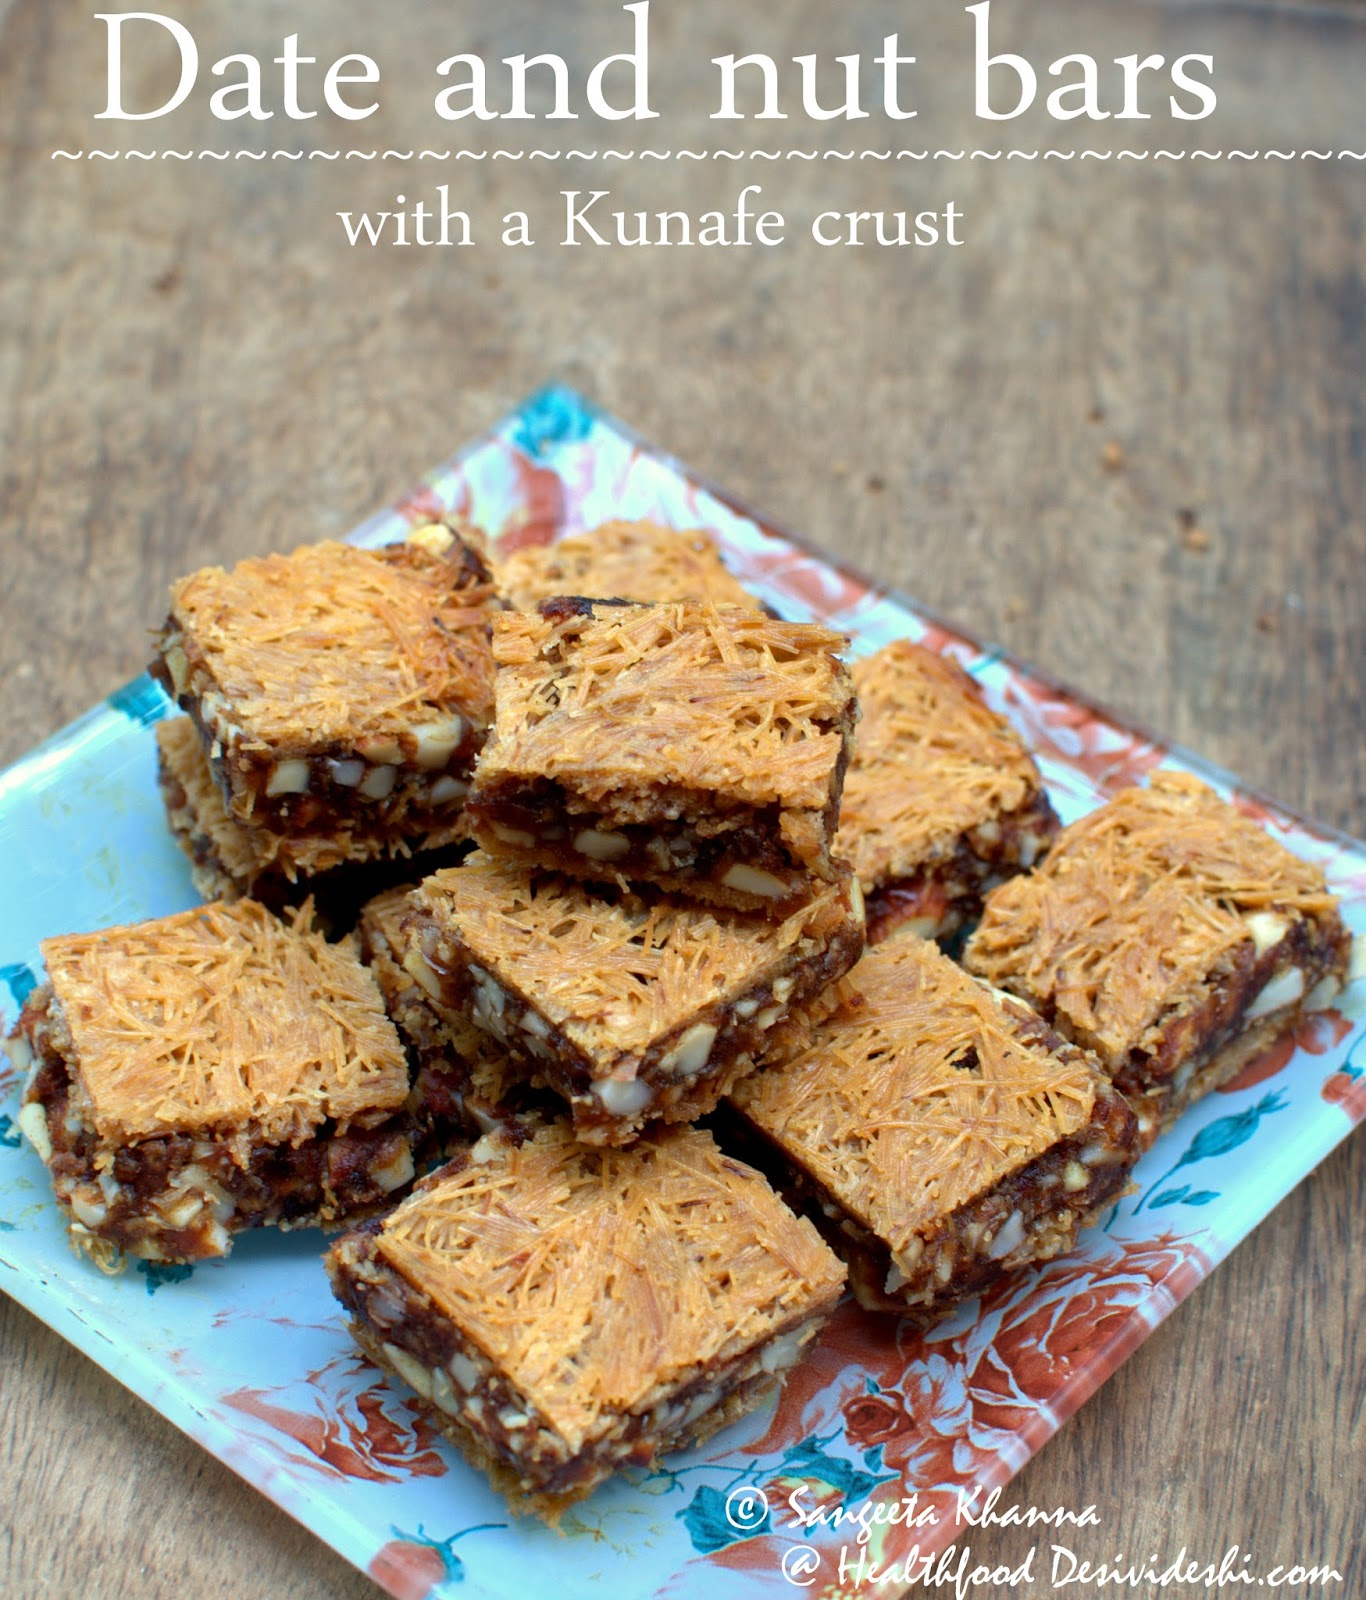 healthfood desivideshi: recipe of date and nut bars with kunafe crust ...